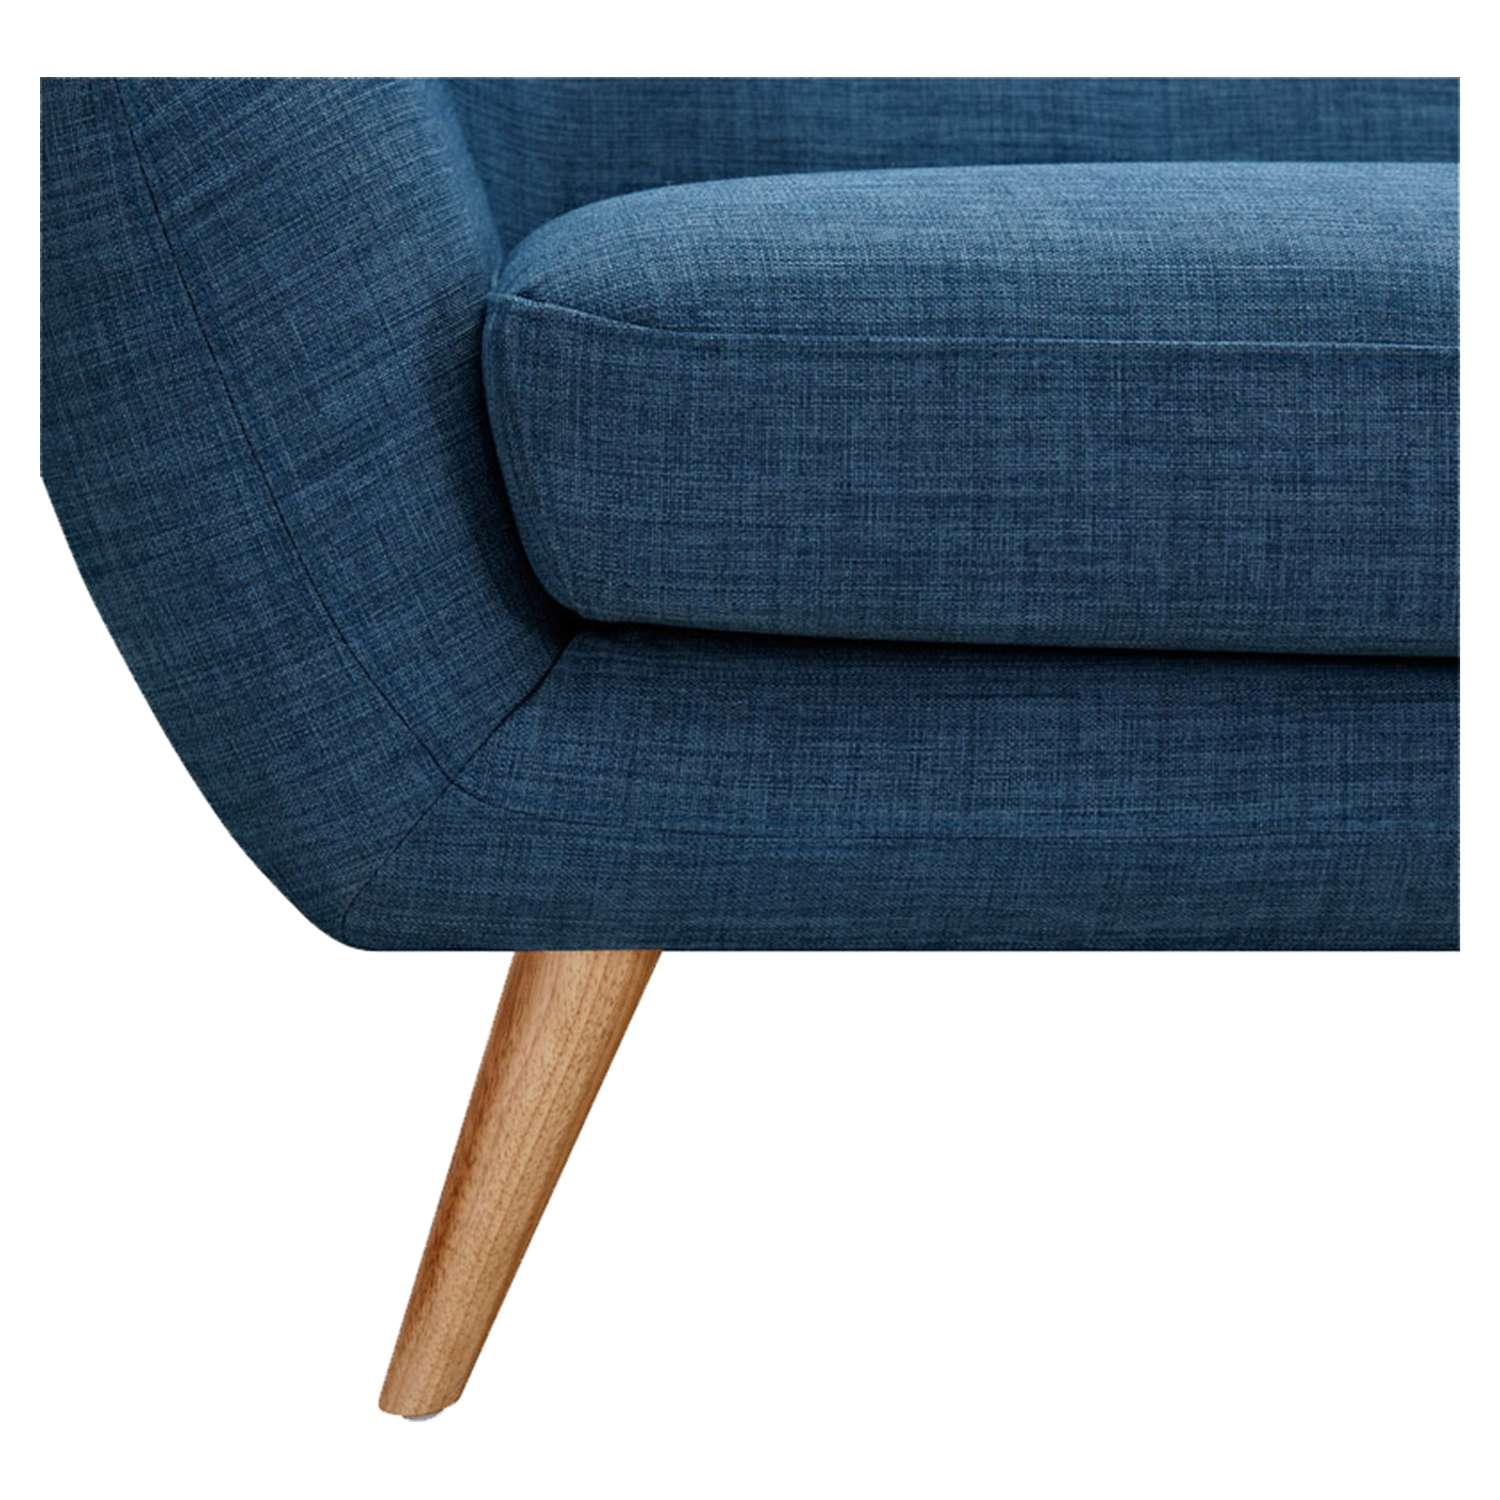 Ida Button Tufted Upholstery Armchair - Stone Blue - NYEK-223319